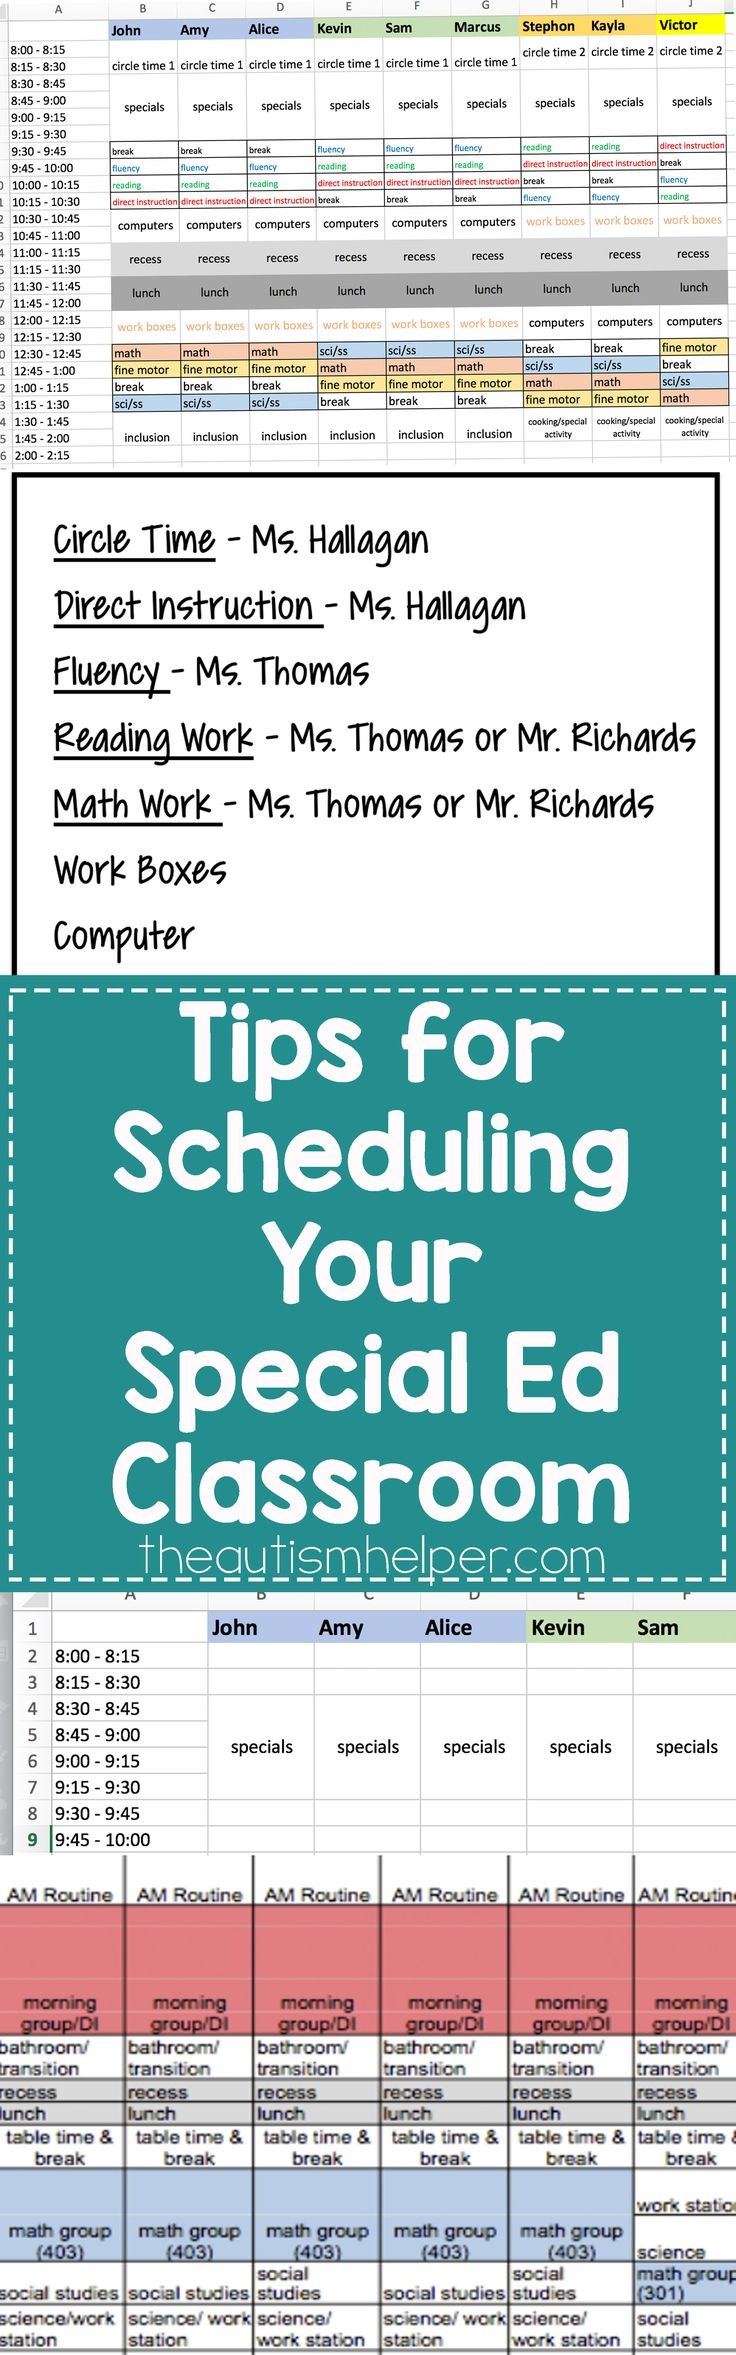 Ideas for Scheduling Your Particular Ed Classroom